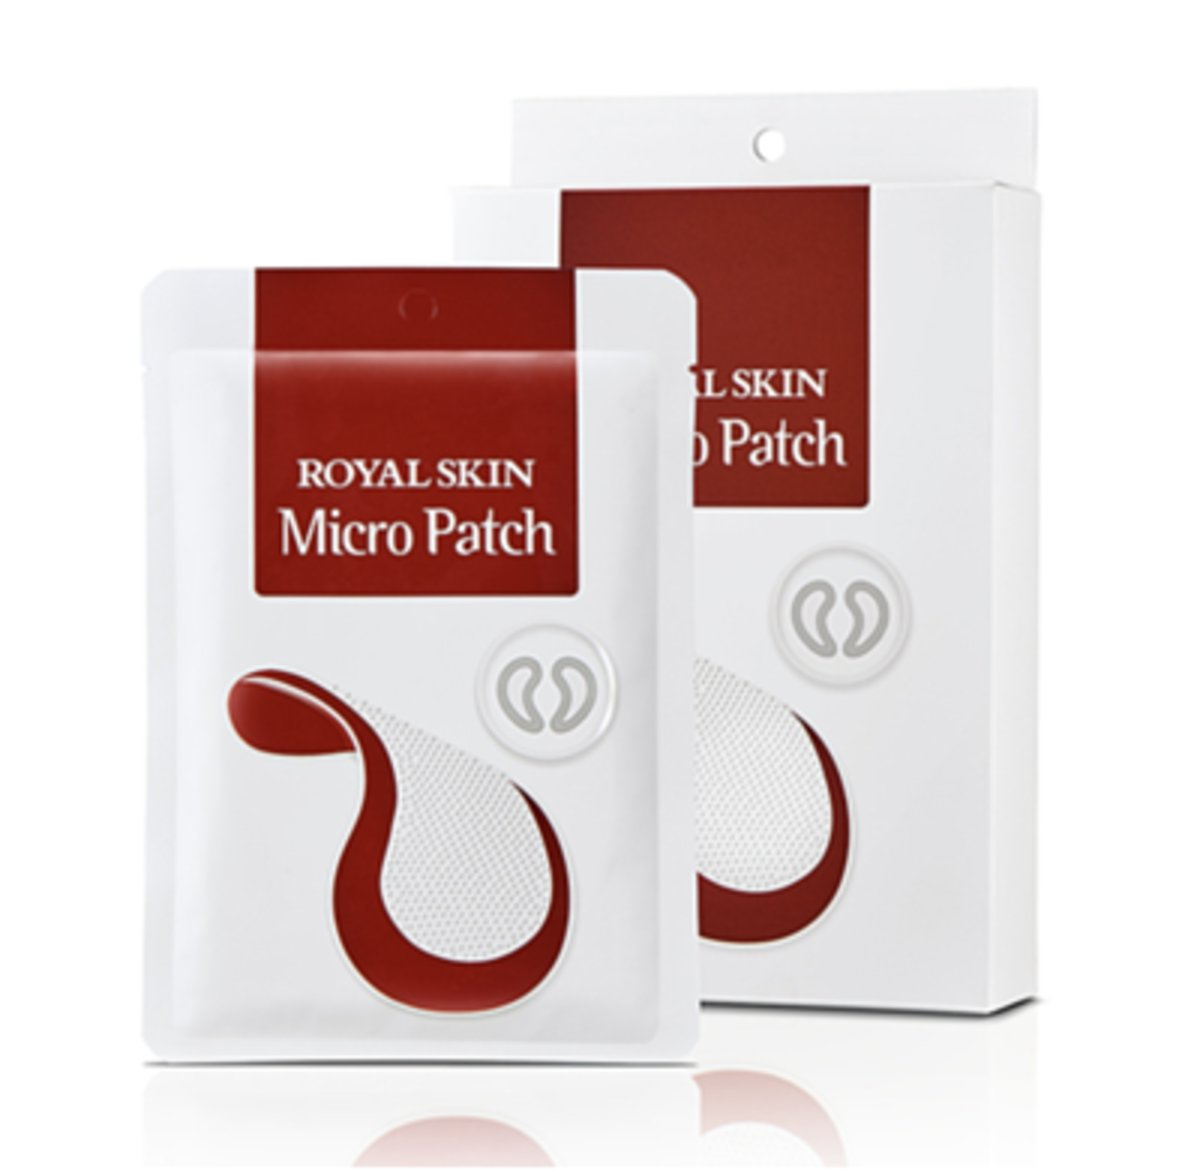 ROYAL SKIN Micro Patch(1 box/8 pcs)